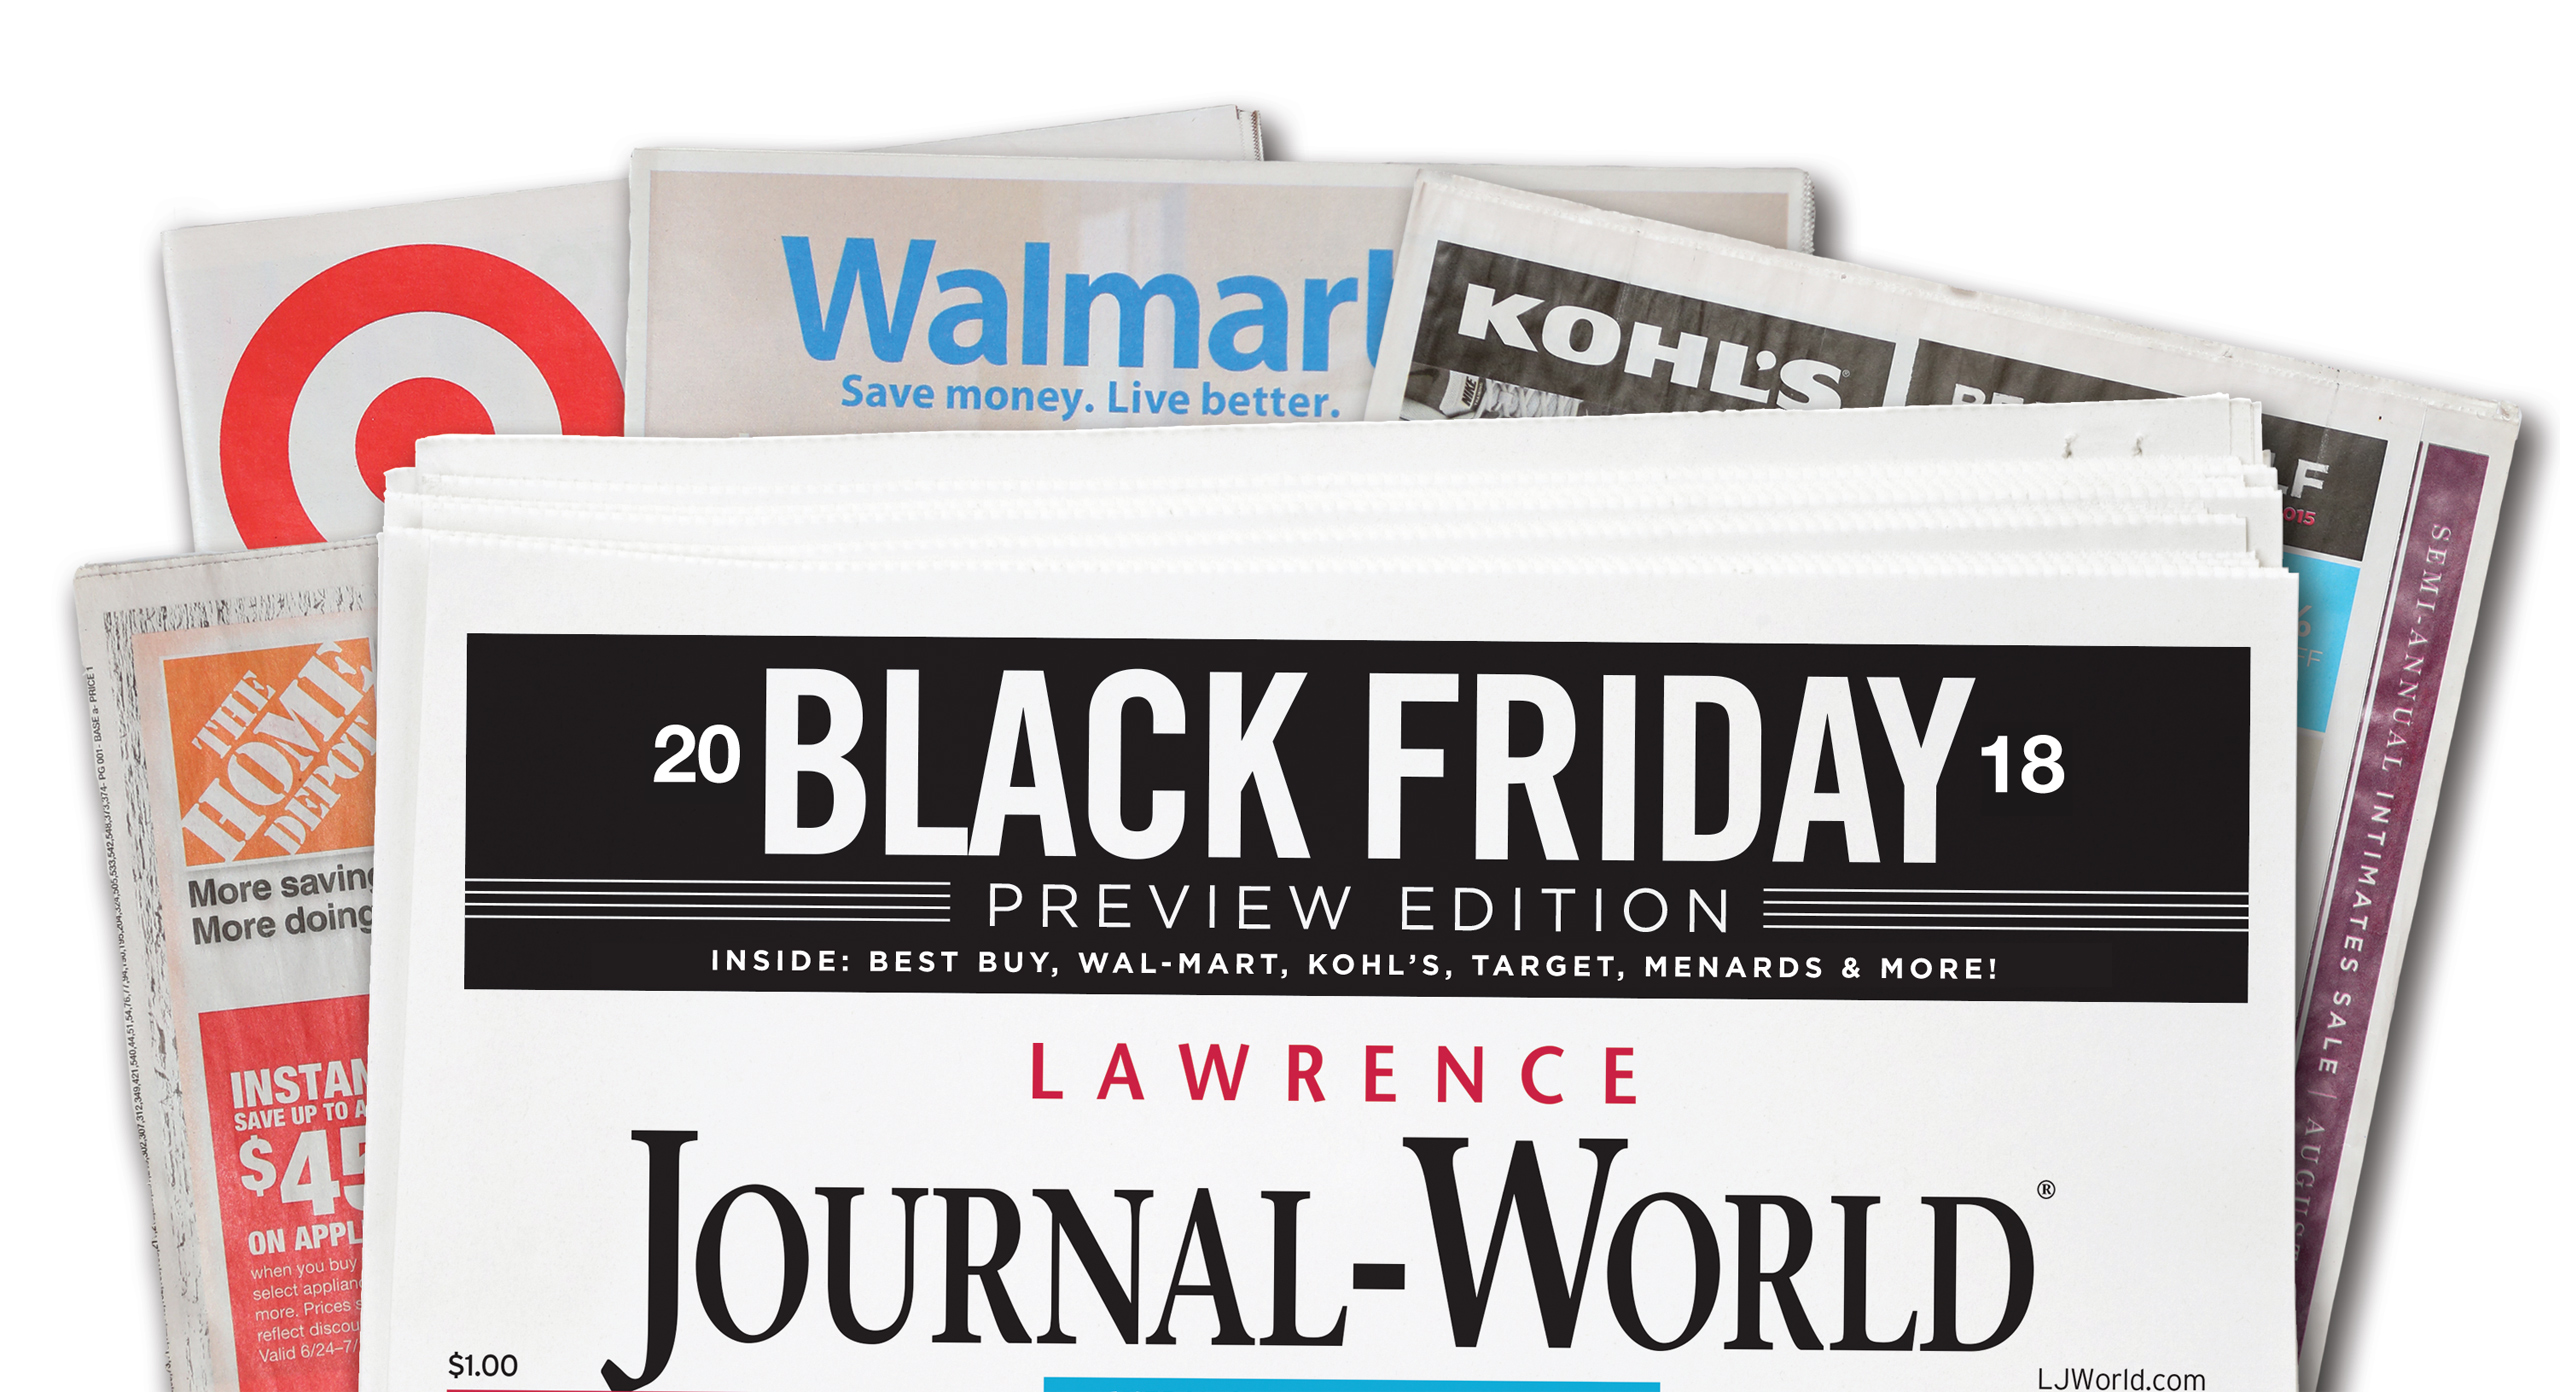 Get Sneak Peek At Black Friday Ads By Picking Up Wednesday